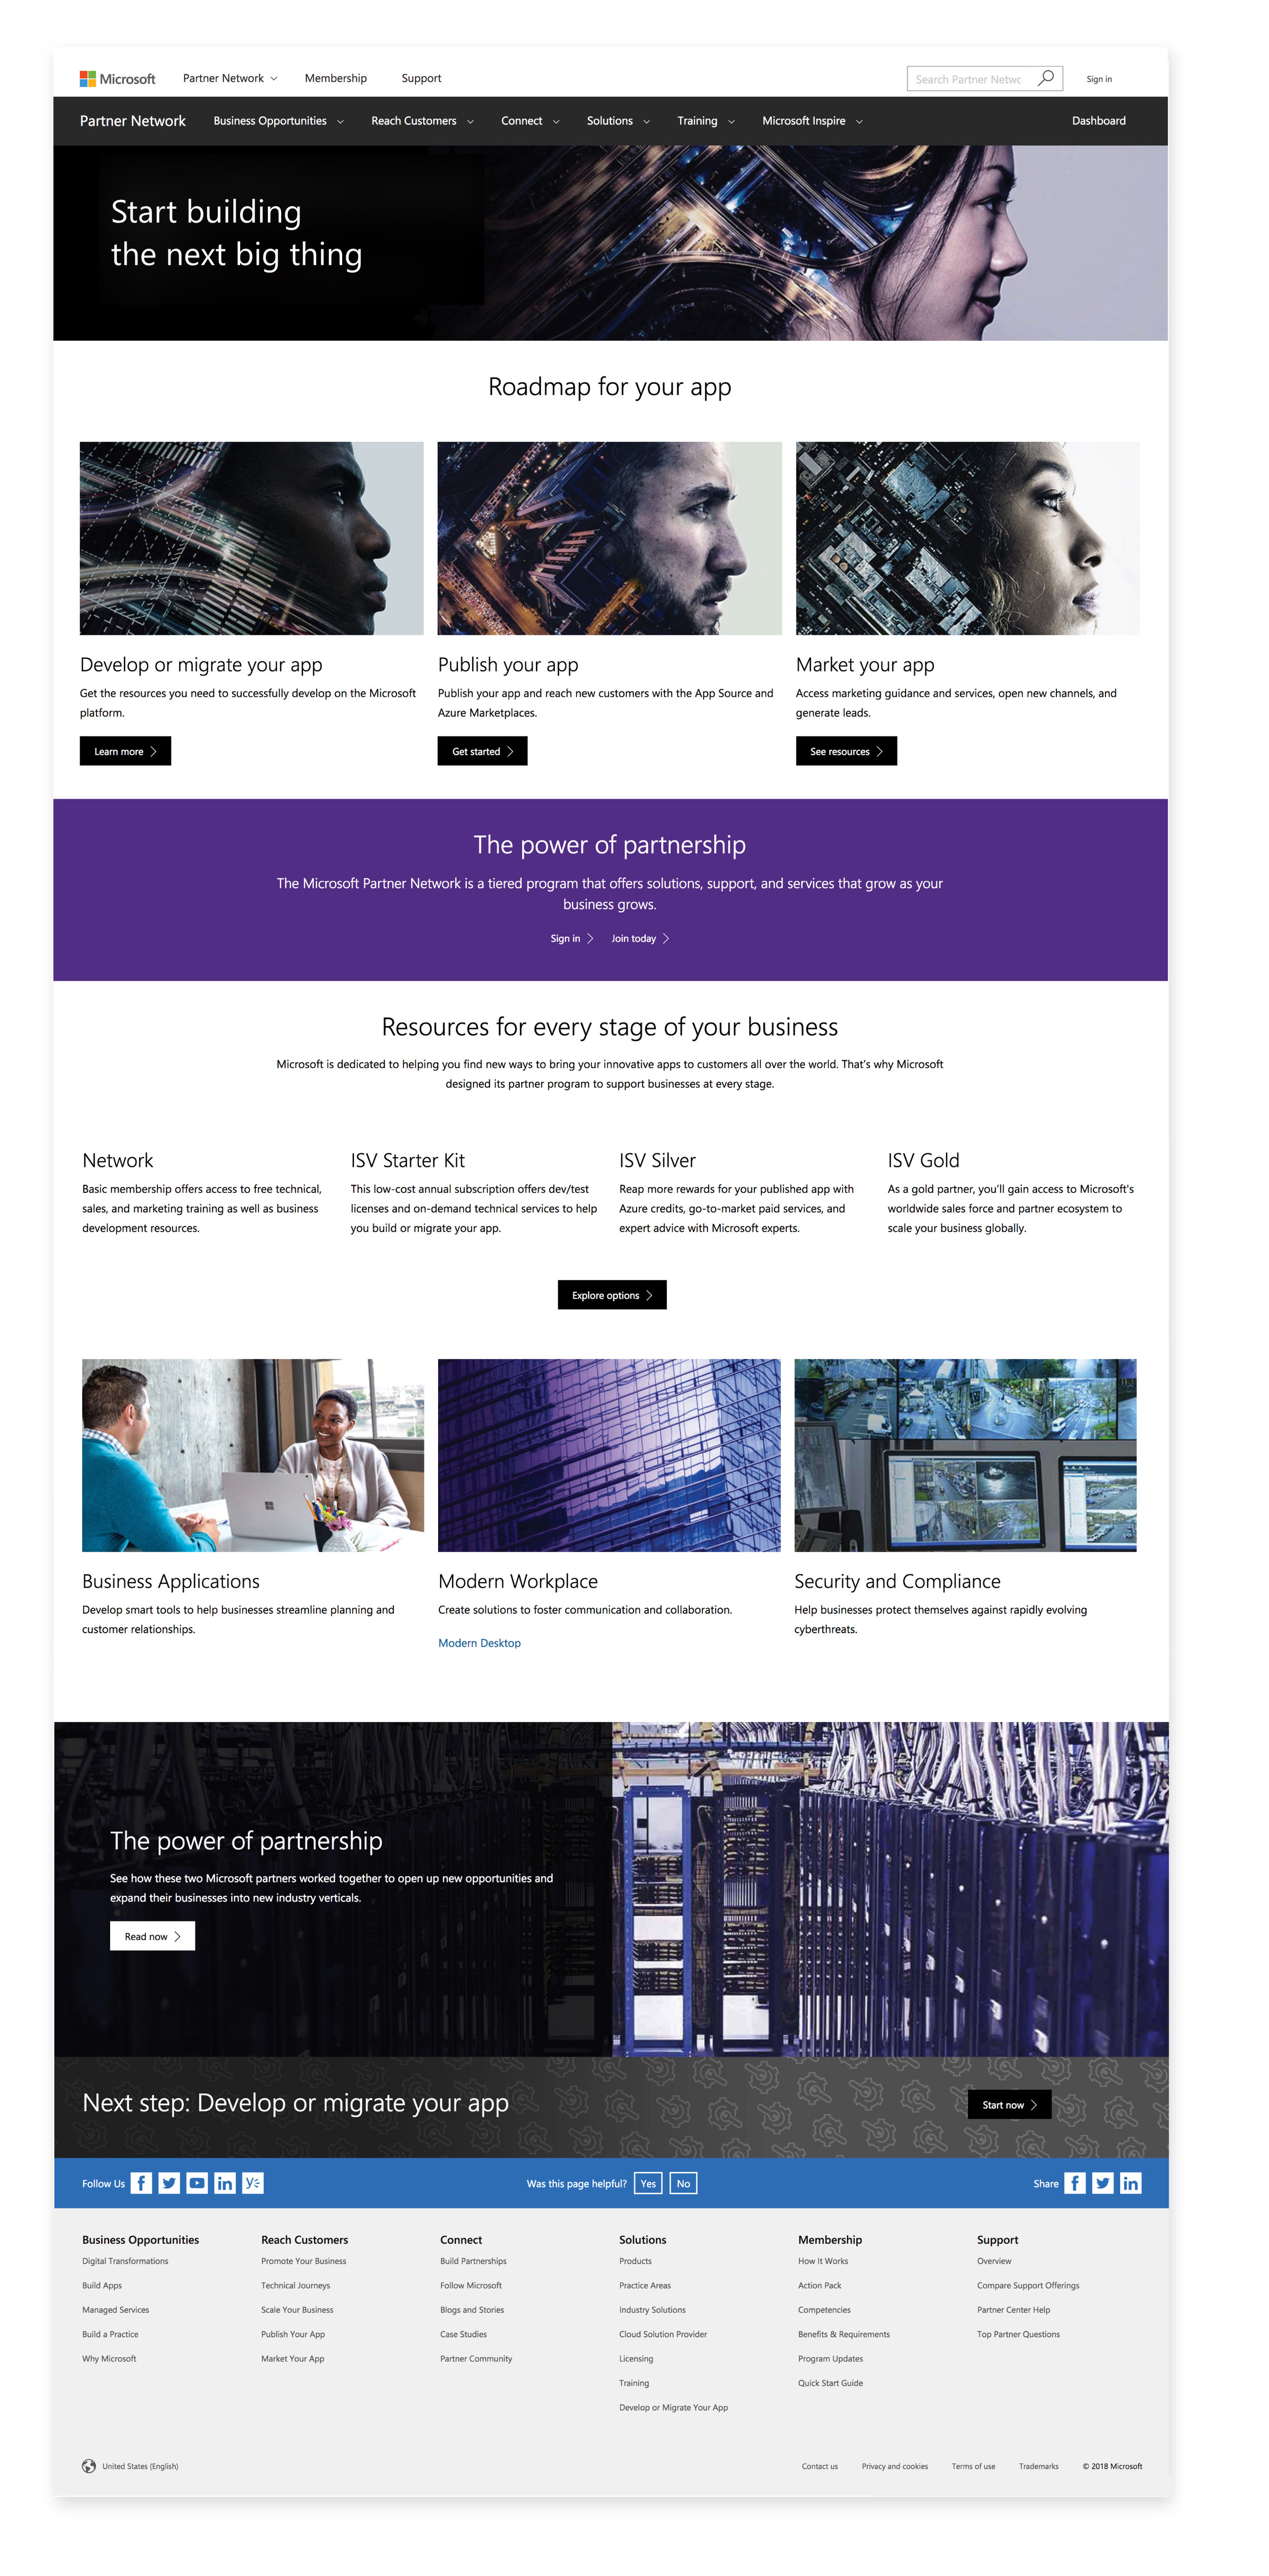 Microsoft Partner Network new site - Microsoft needed help transforming a fragmented user experience on the Microsoft Partners portal into a cohesive and streamlined experience that could be personalized to the needs of each partner and change the visuals throughout the whole site.